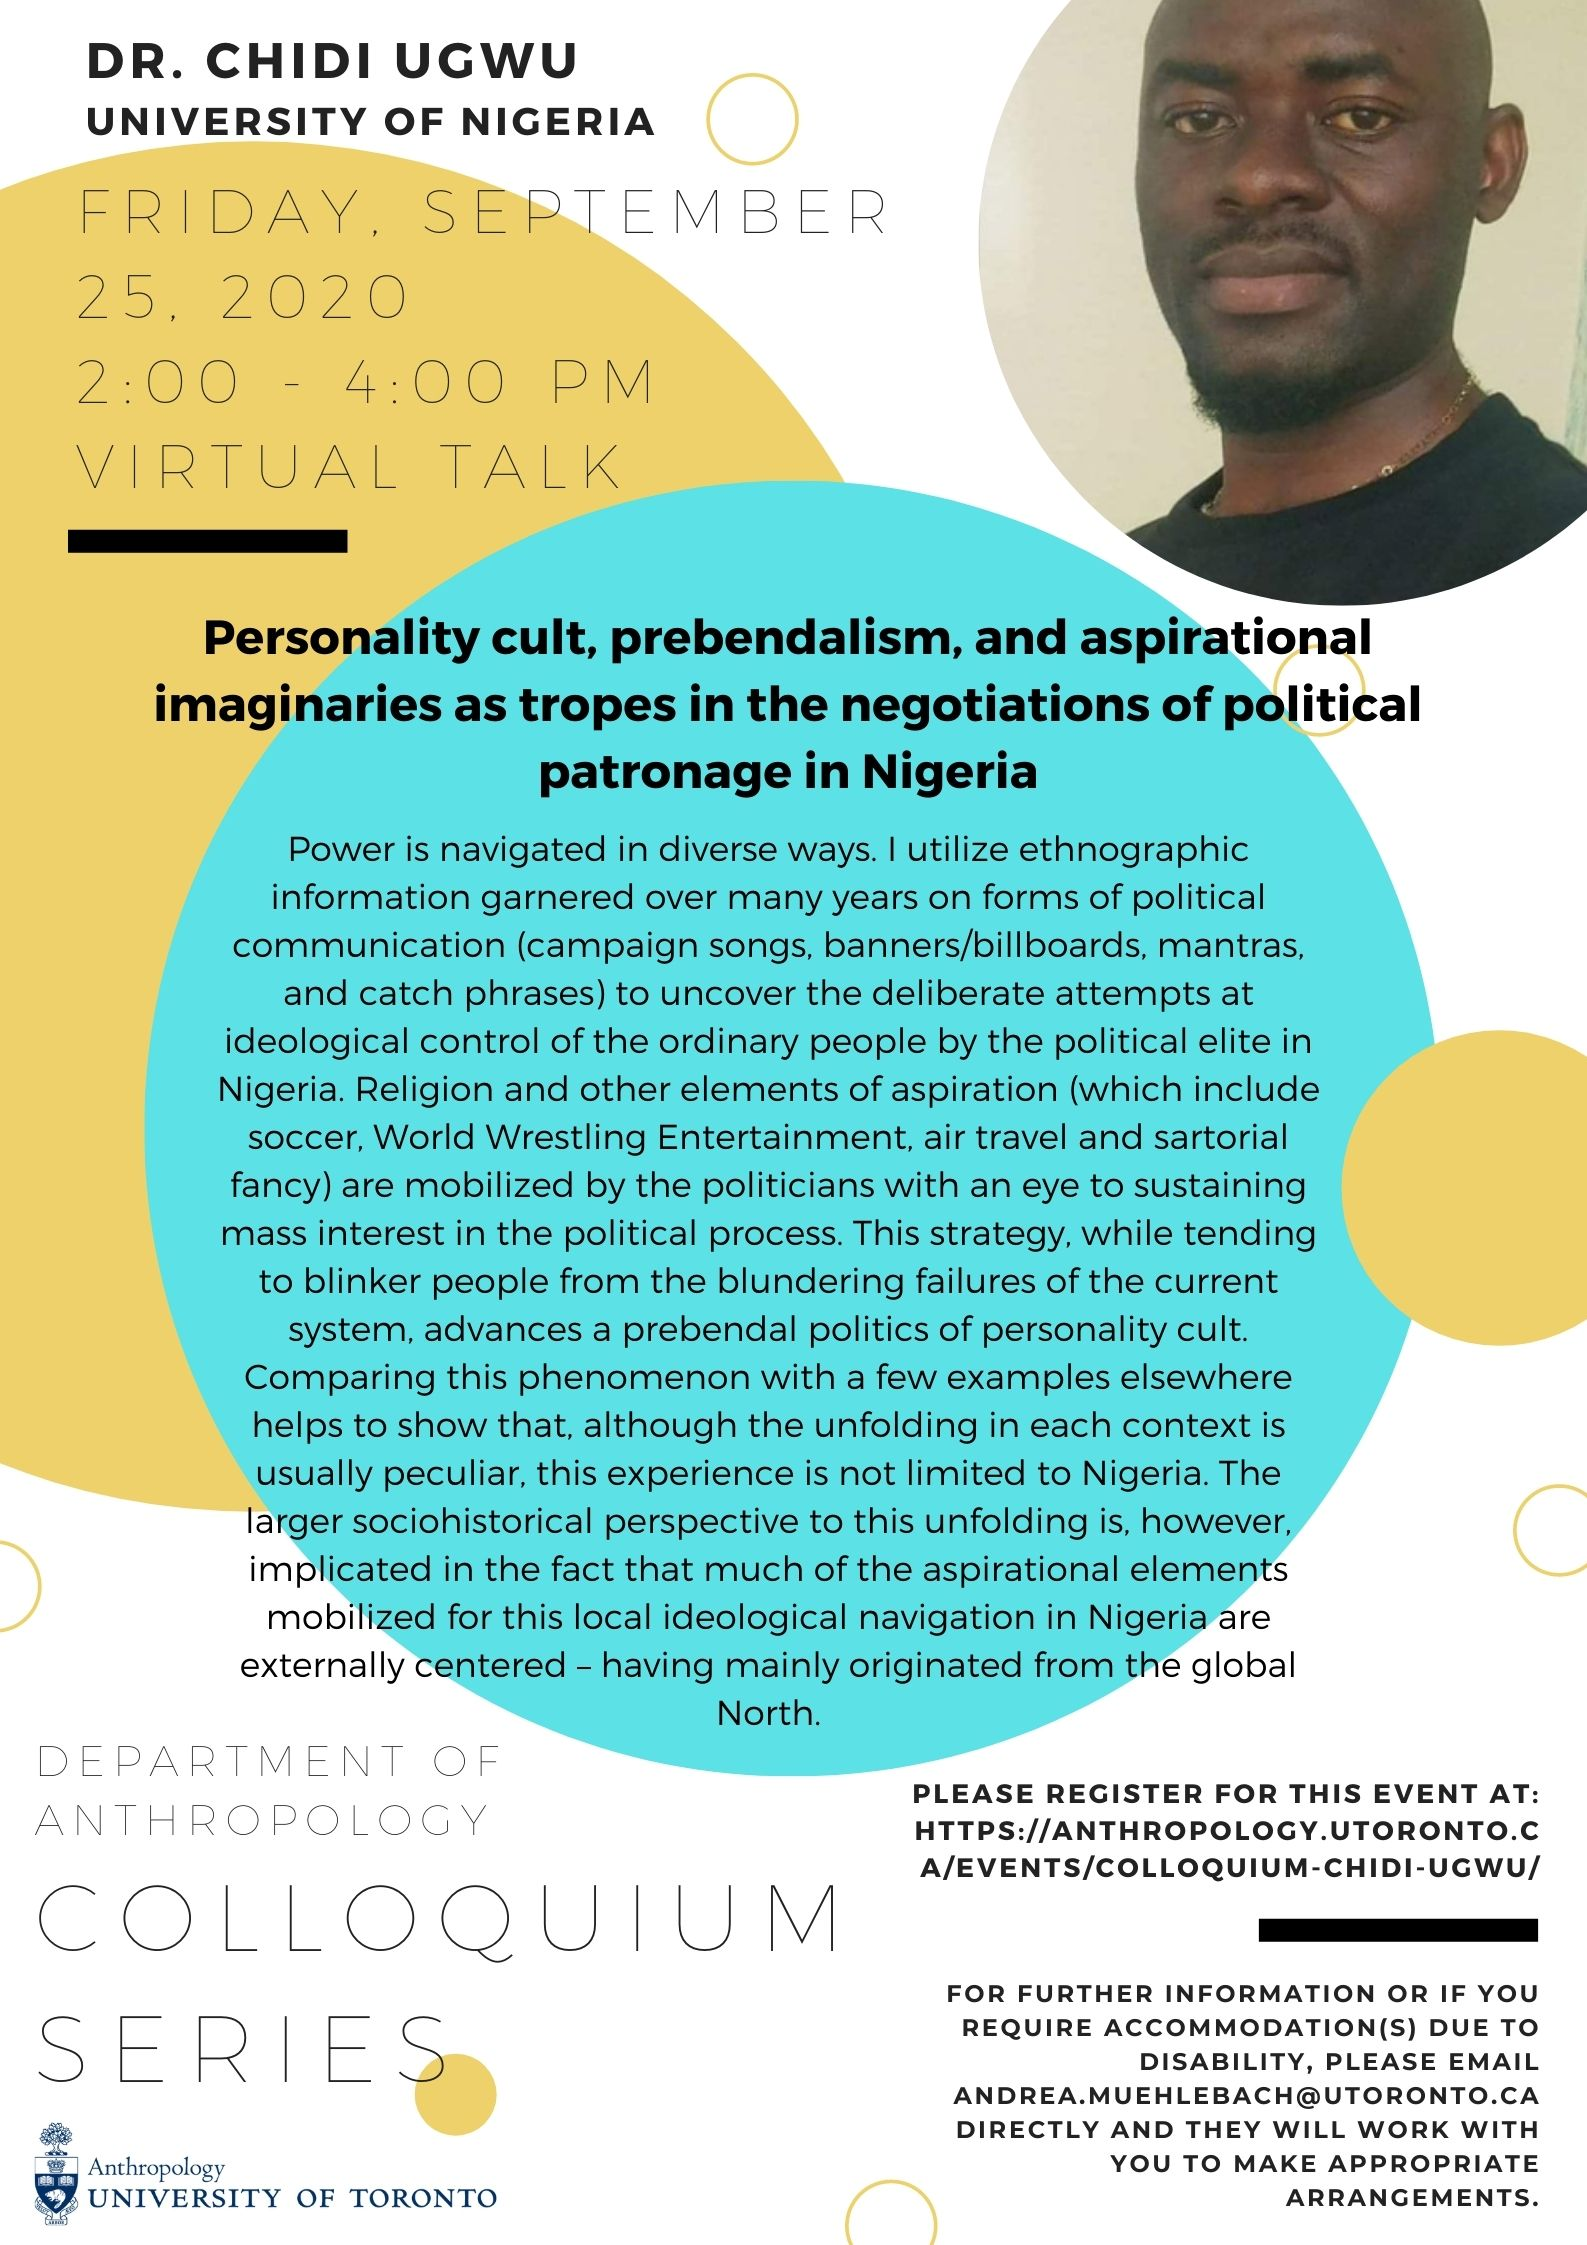 Poster featuring Dr. Chidi Ugwu